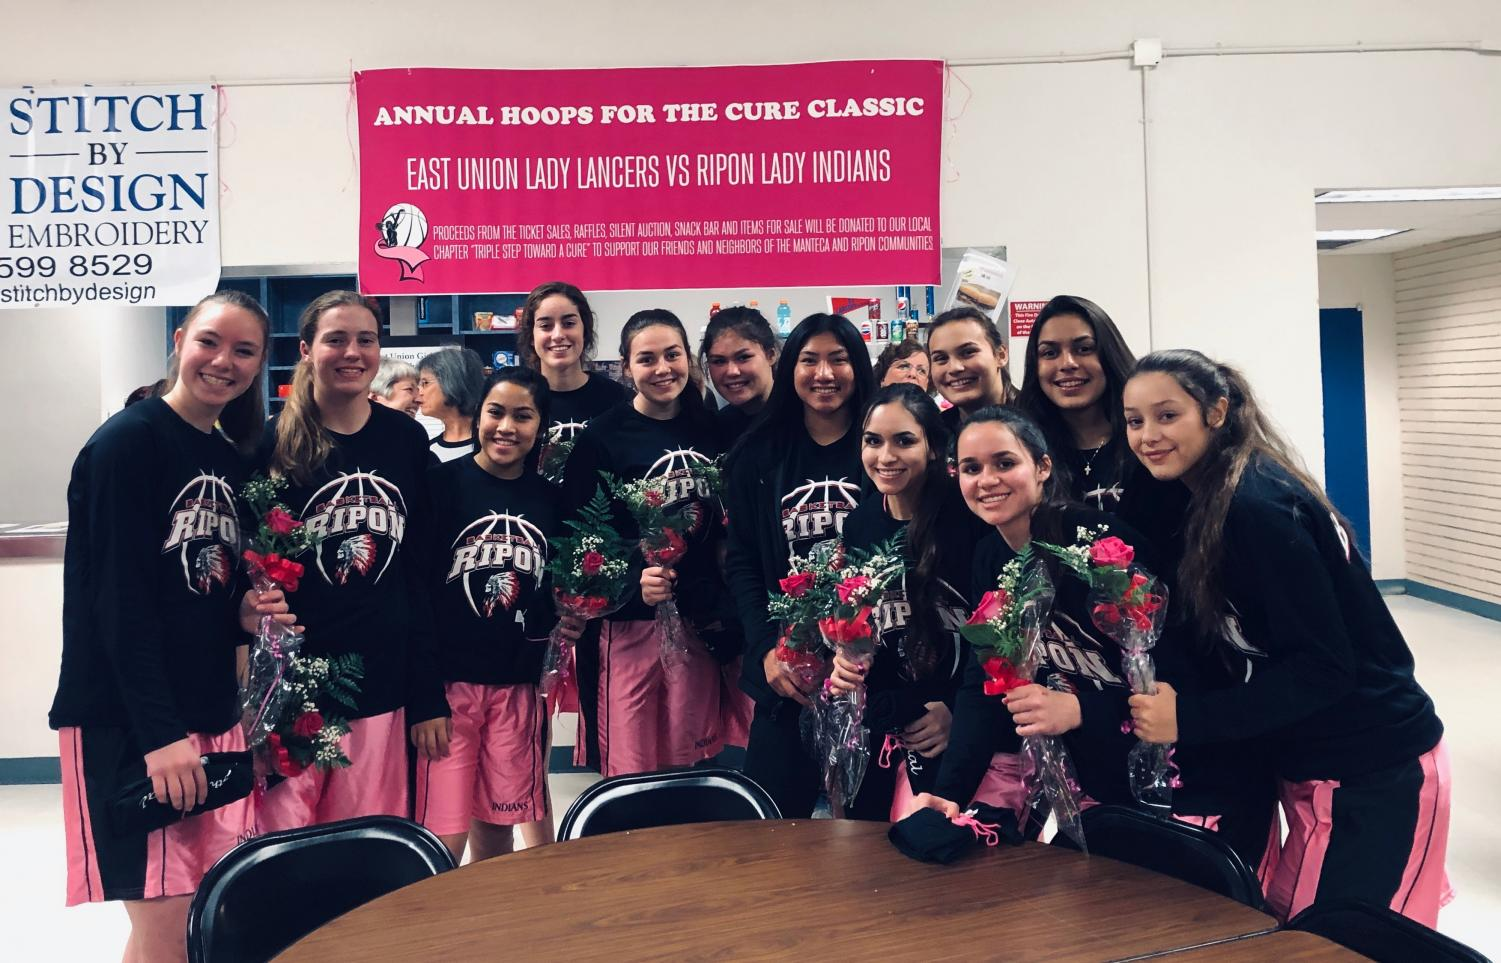 Pictured above, the Girls Varsity Basketball team for Ripon High posed with a few of their cancer survivors and roses.